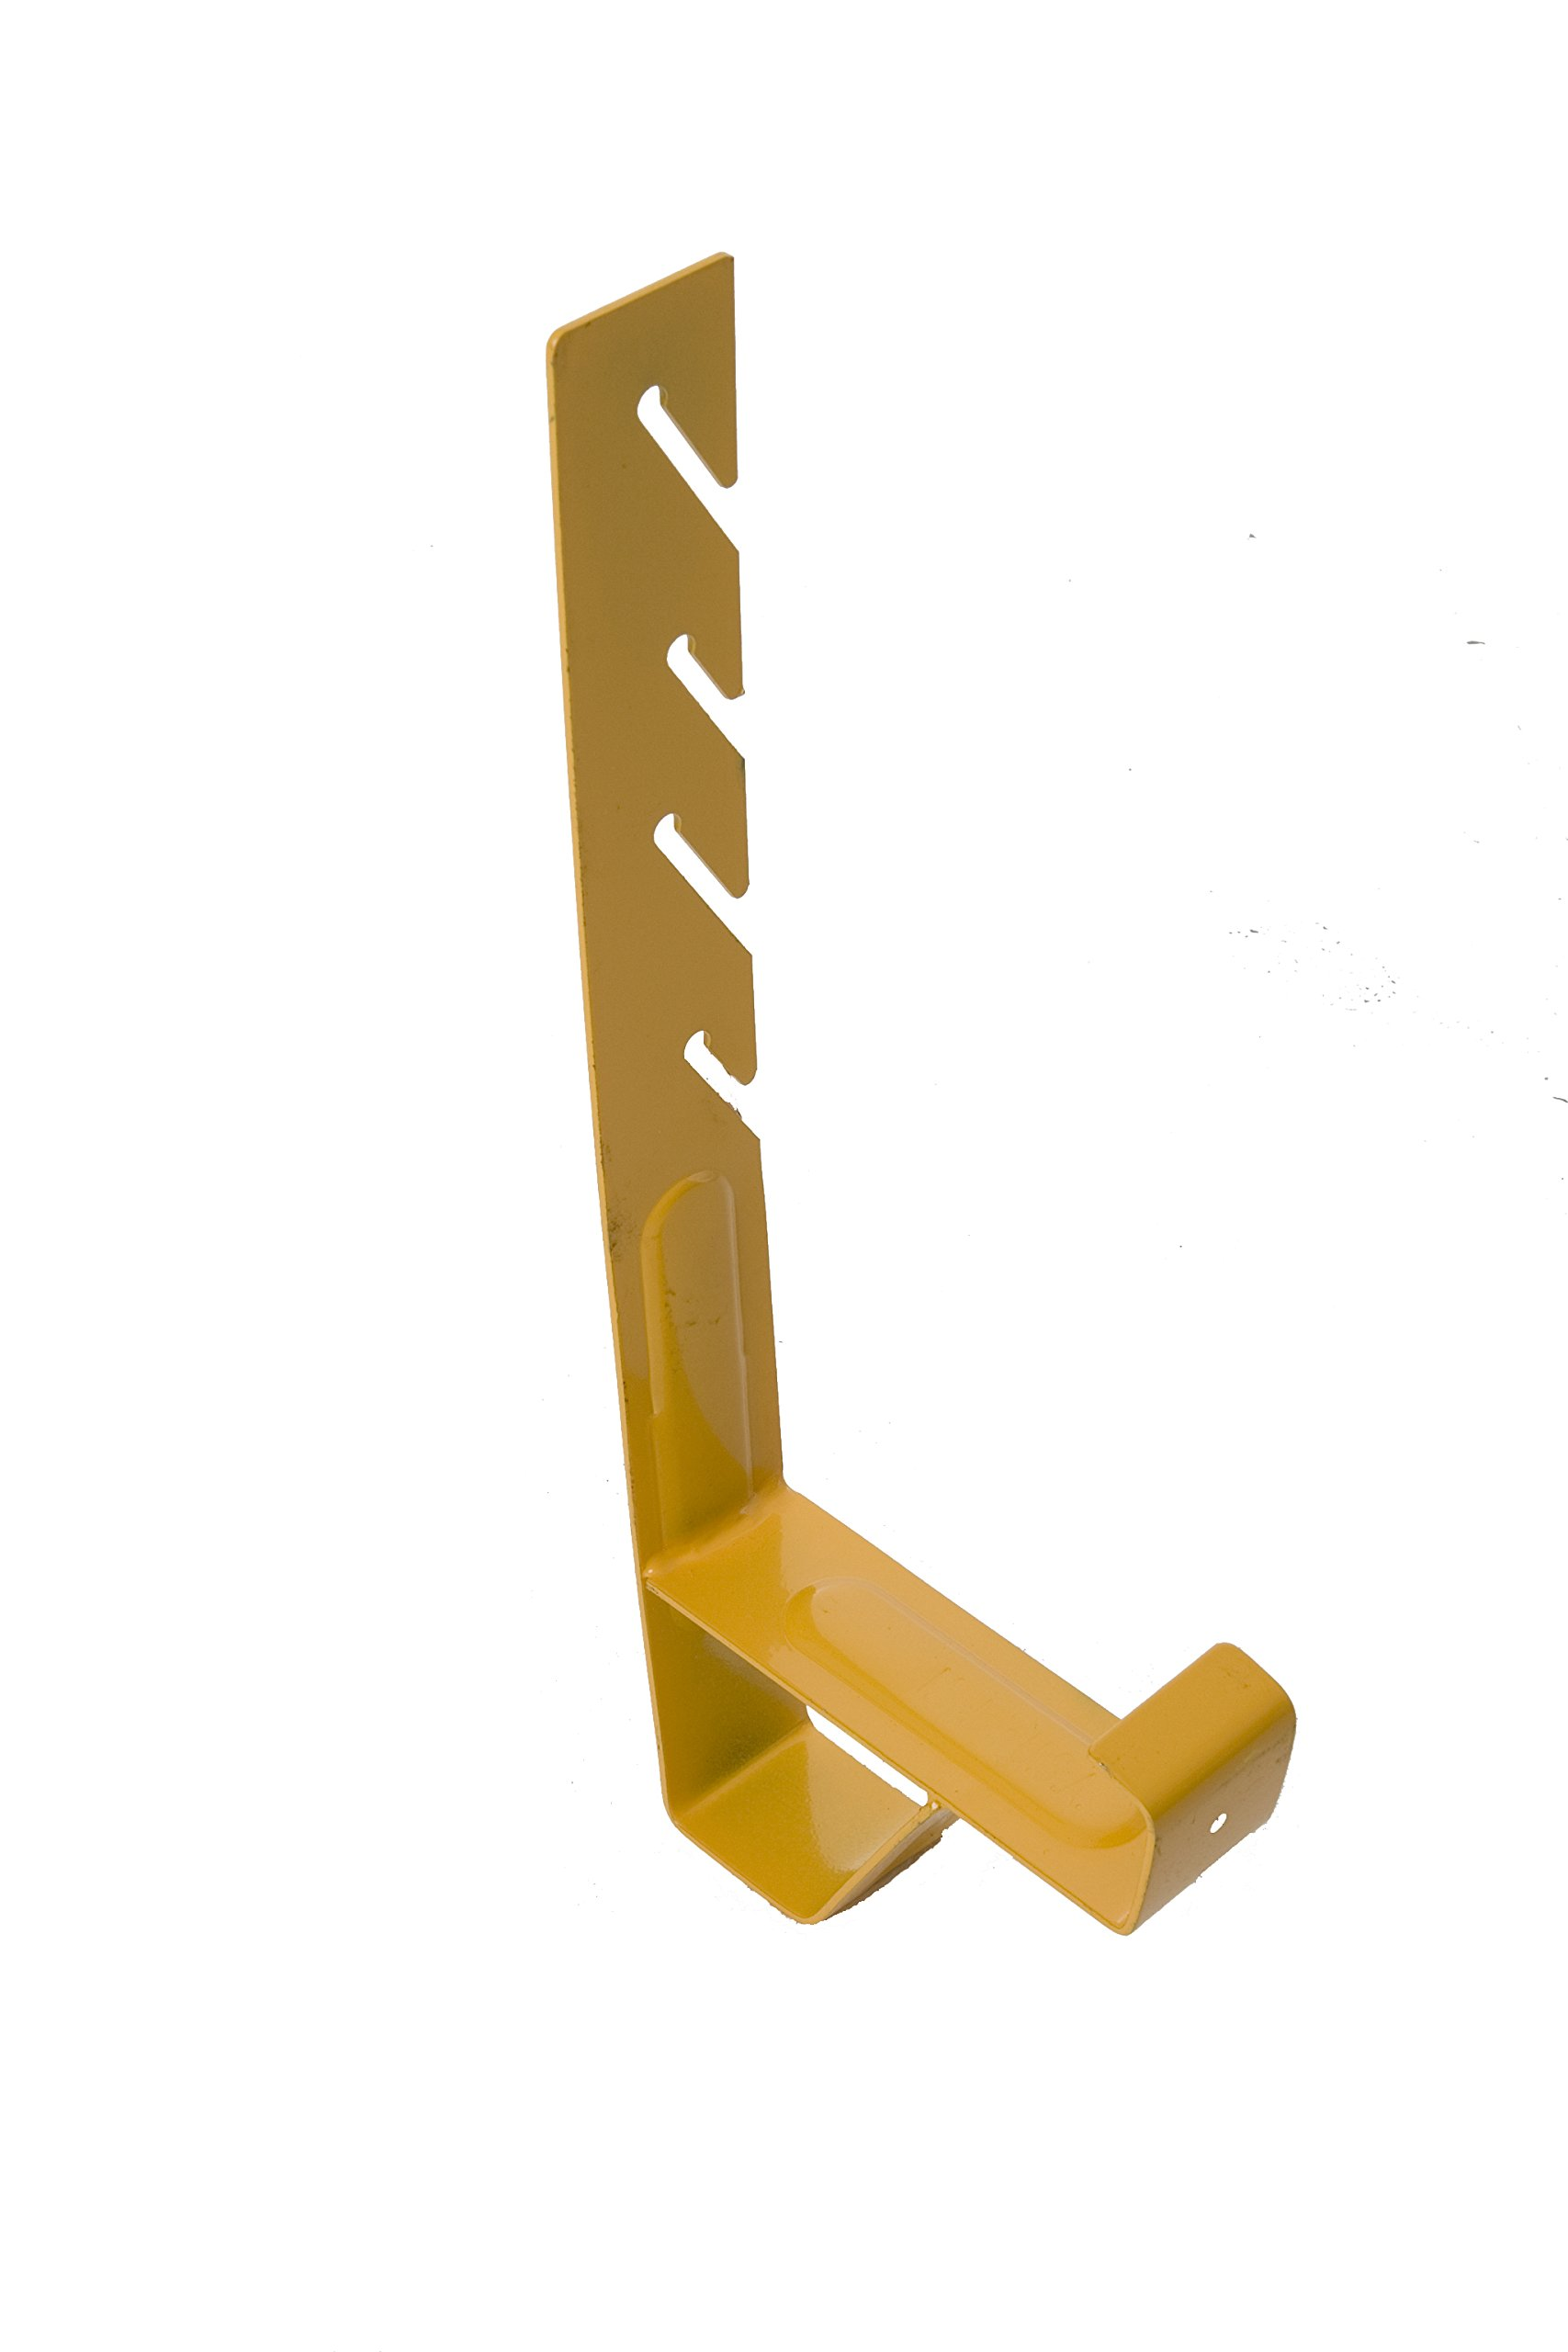 ACRO BUILDING SYSTEMS Fixed Roof Bracket 90 Degree, 2x6 Plank. Box of 12